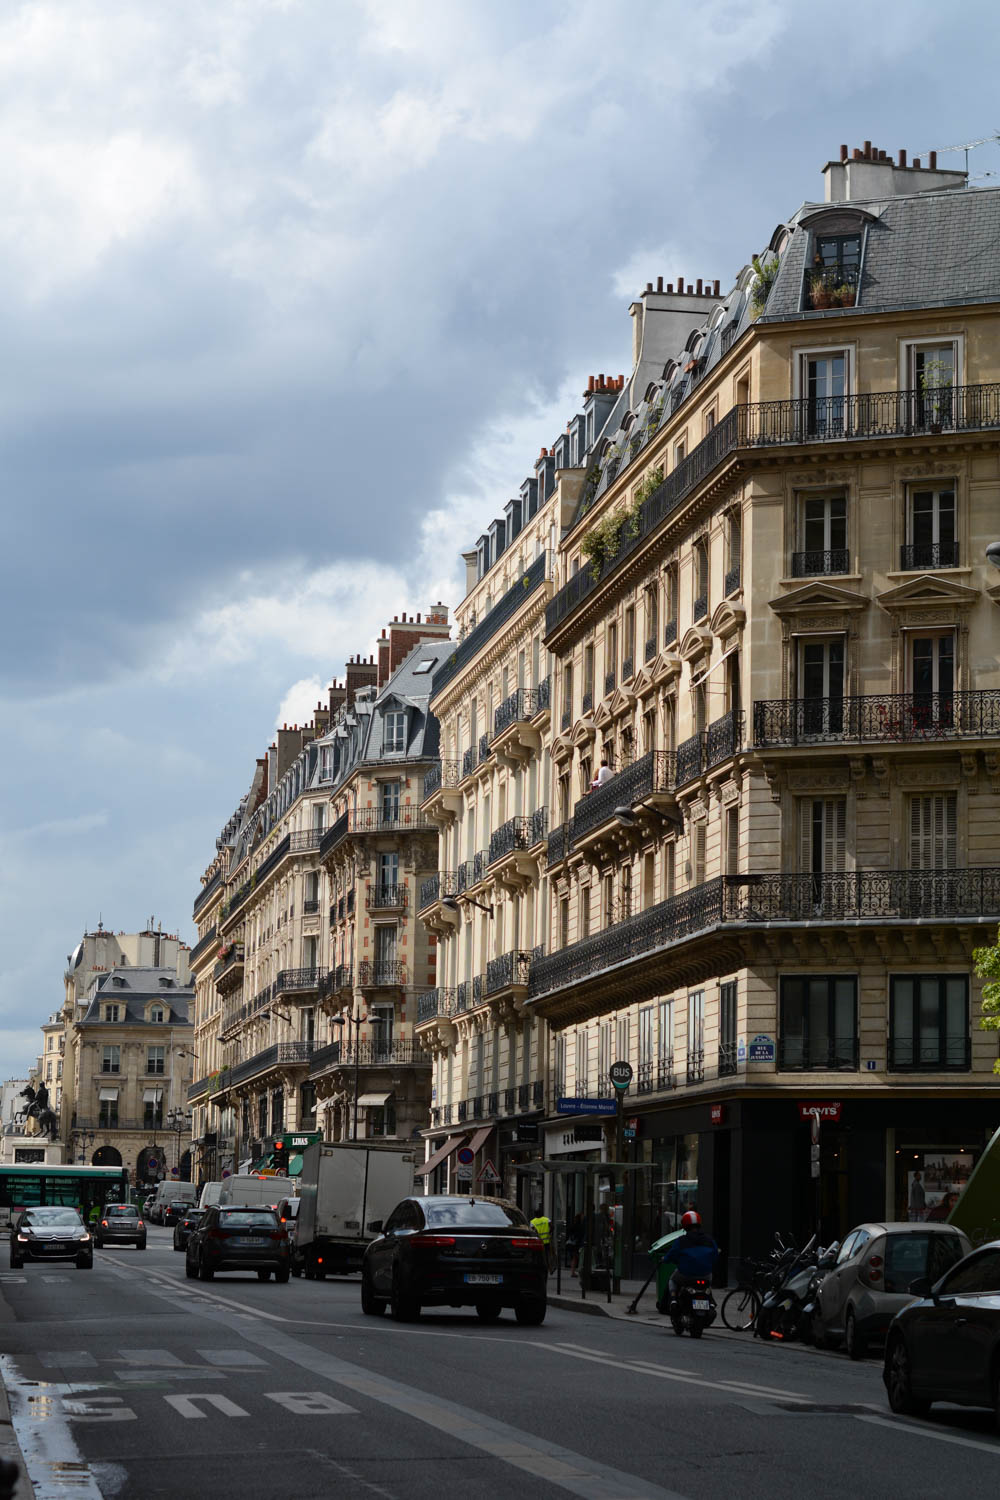 streets-of-paris.jpg